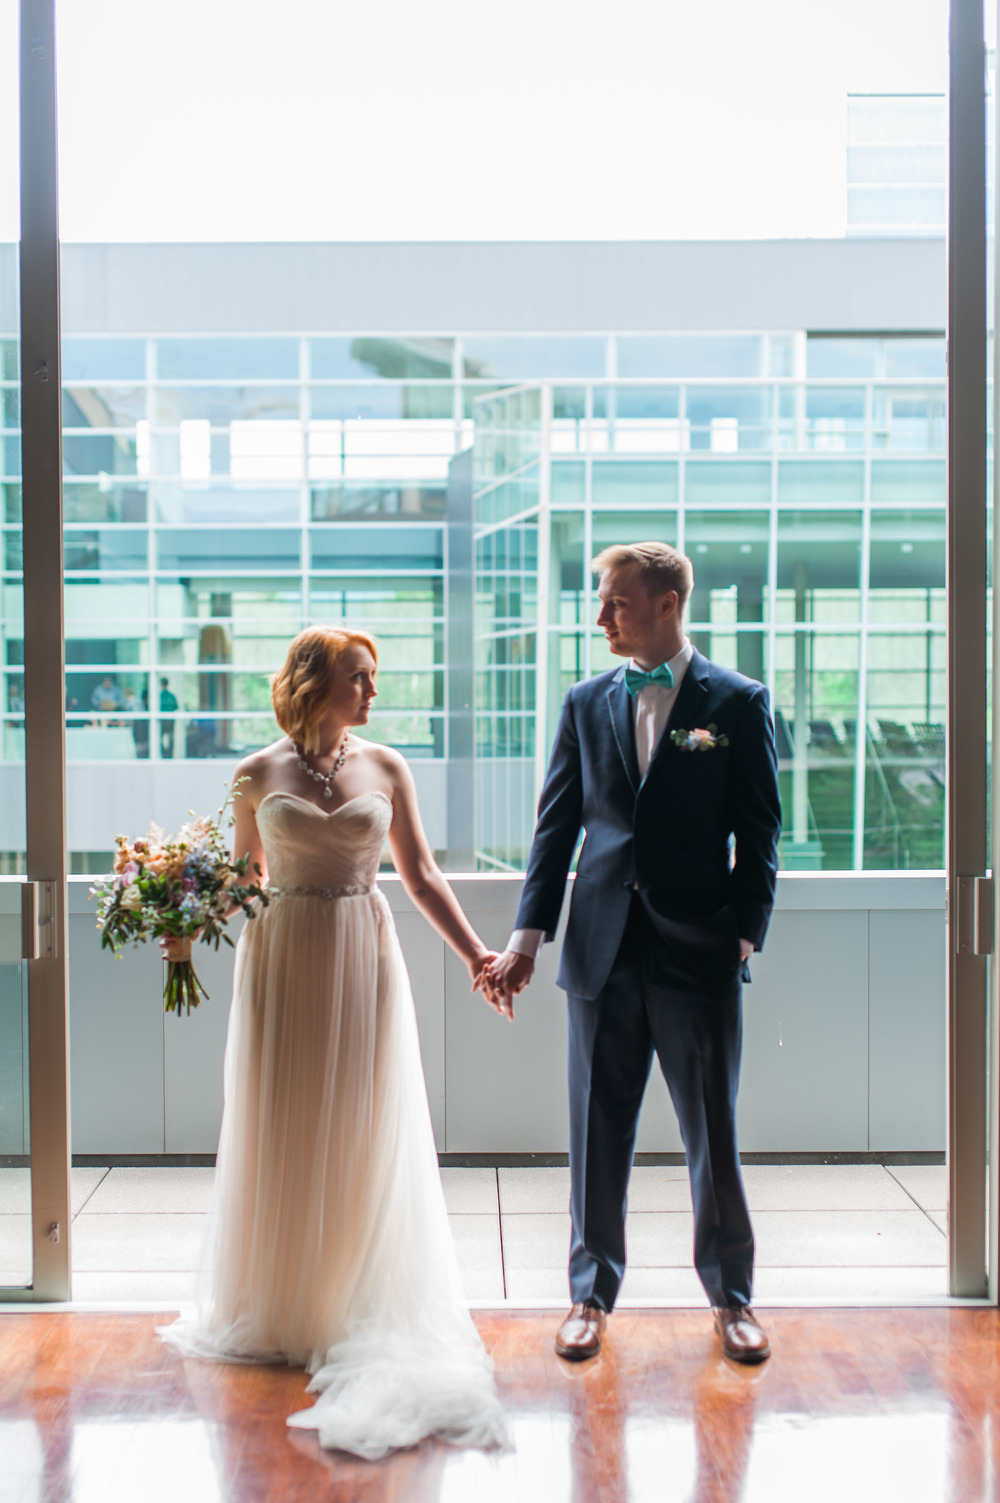 omaha-holland-arts-center-wedding-photography-by-samantha-weddings